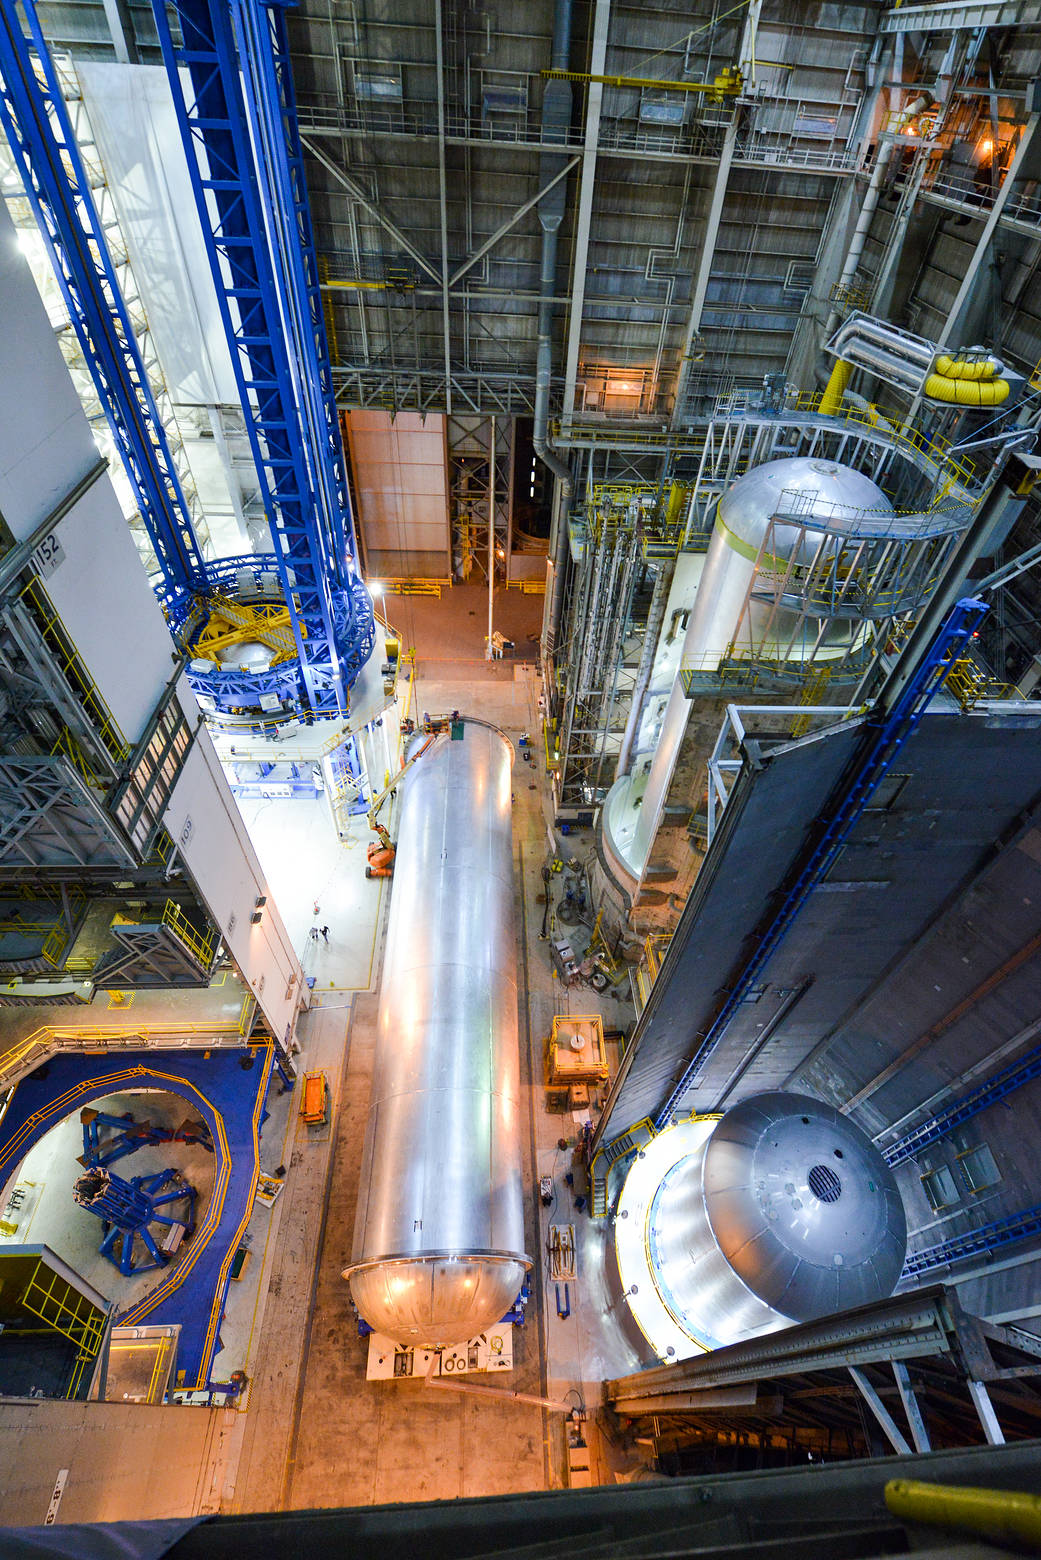 Inside the Vertical Assembly Building at NASA's Michoud Assembly Facility, four fuel tanks are being built and processed.